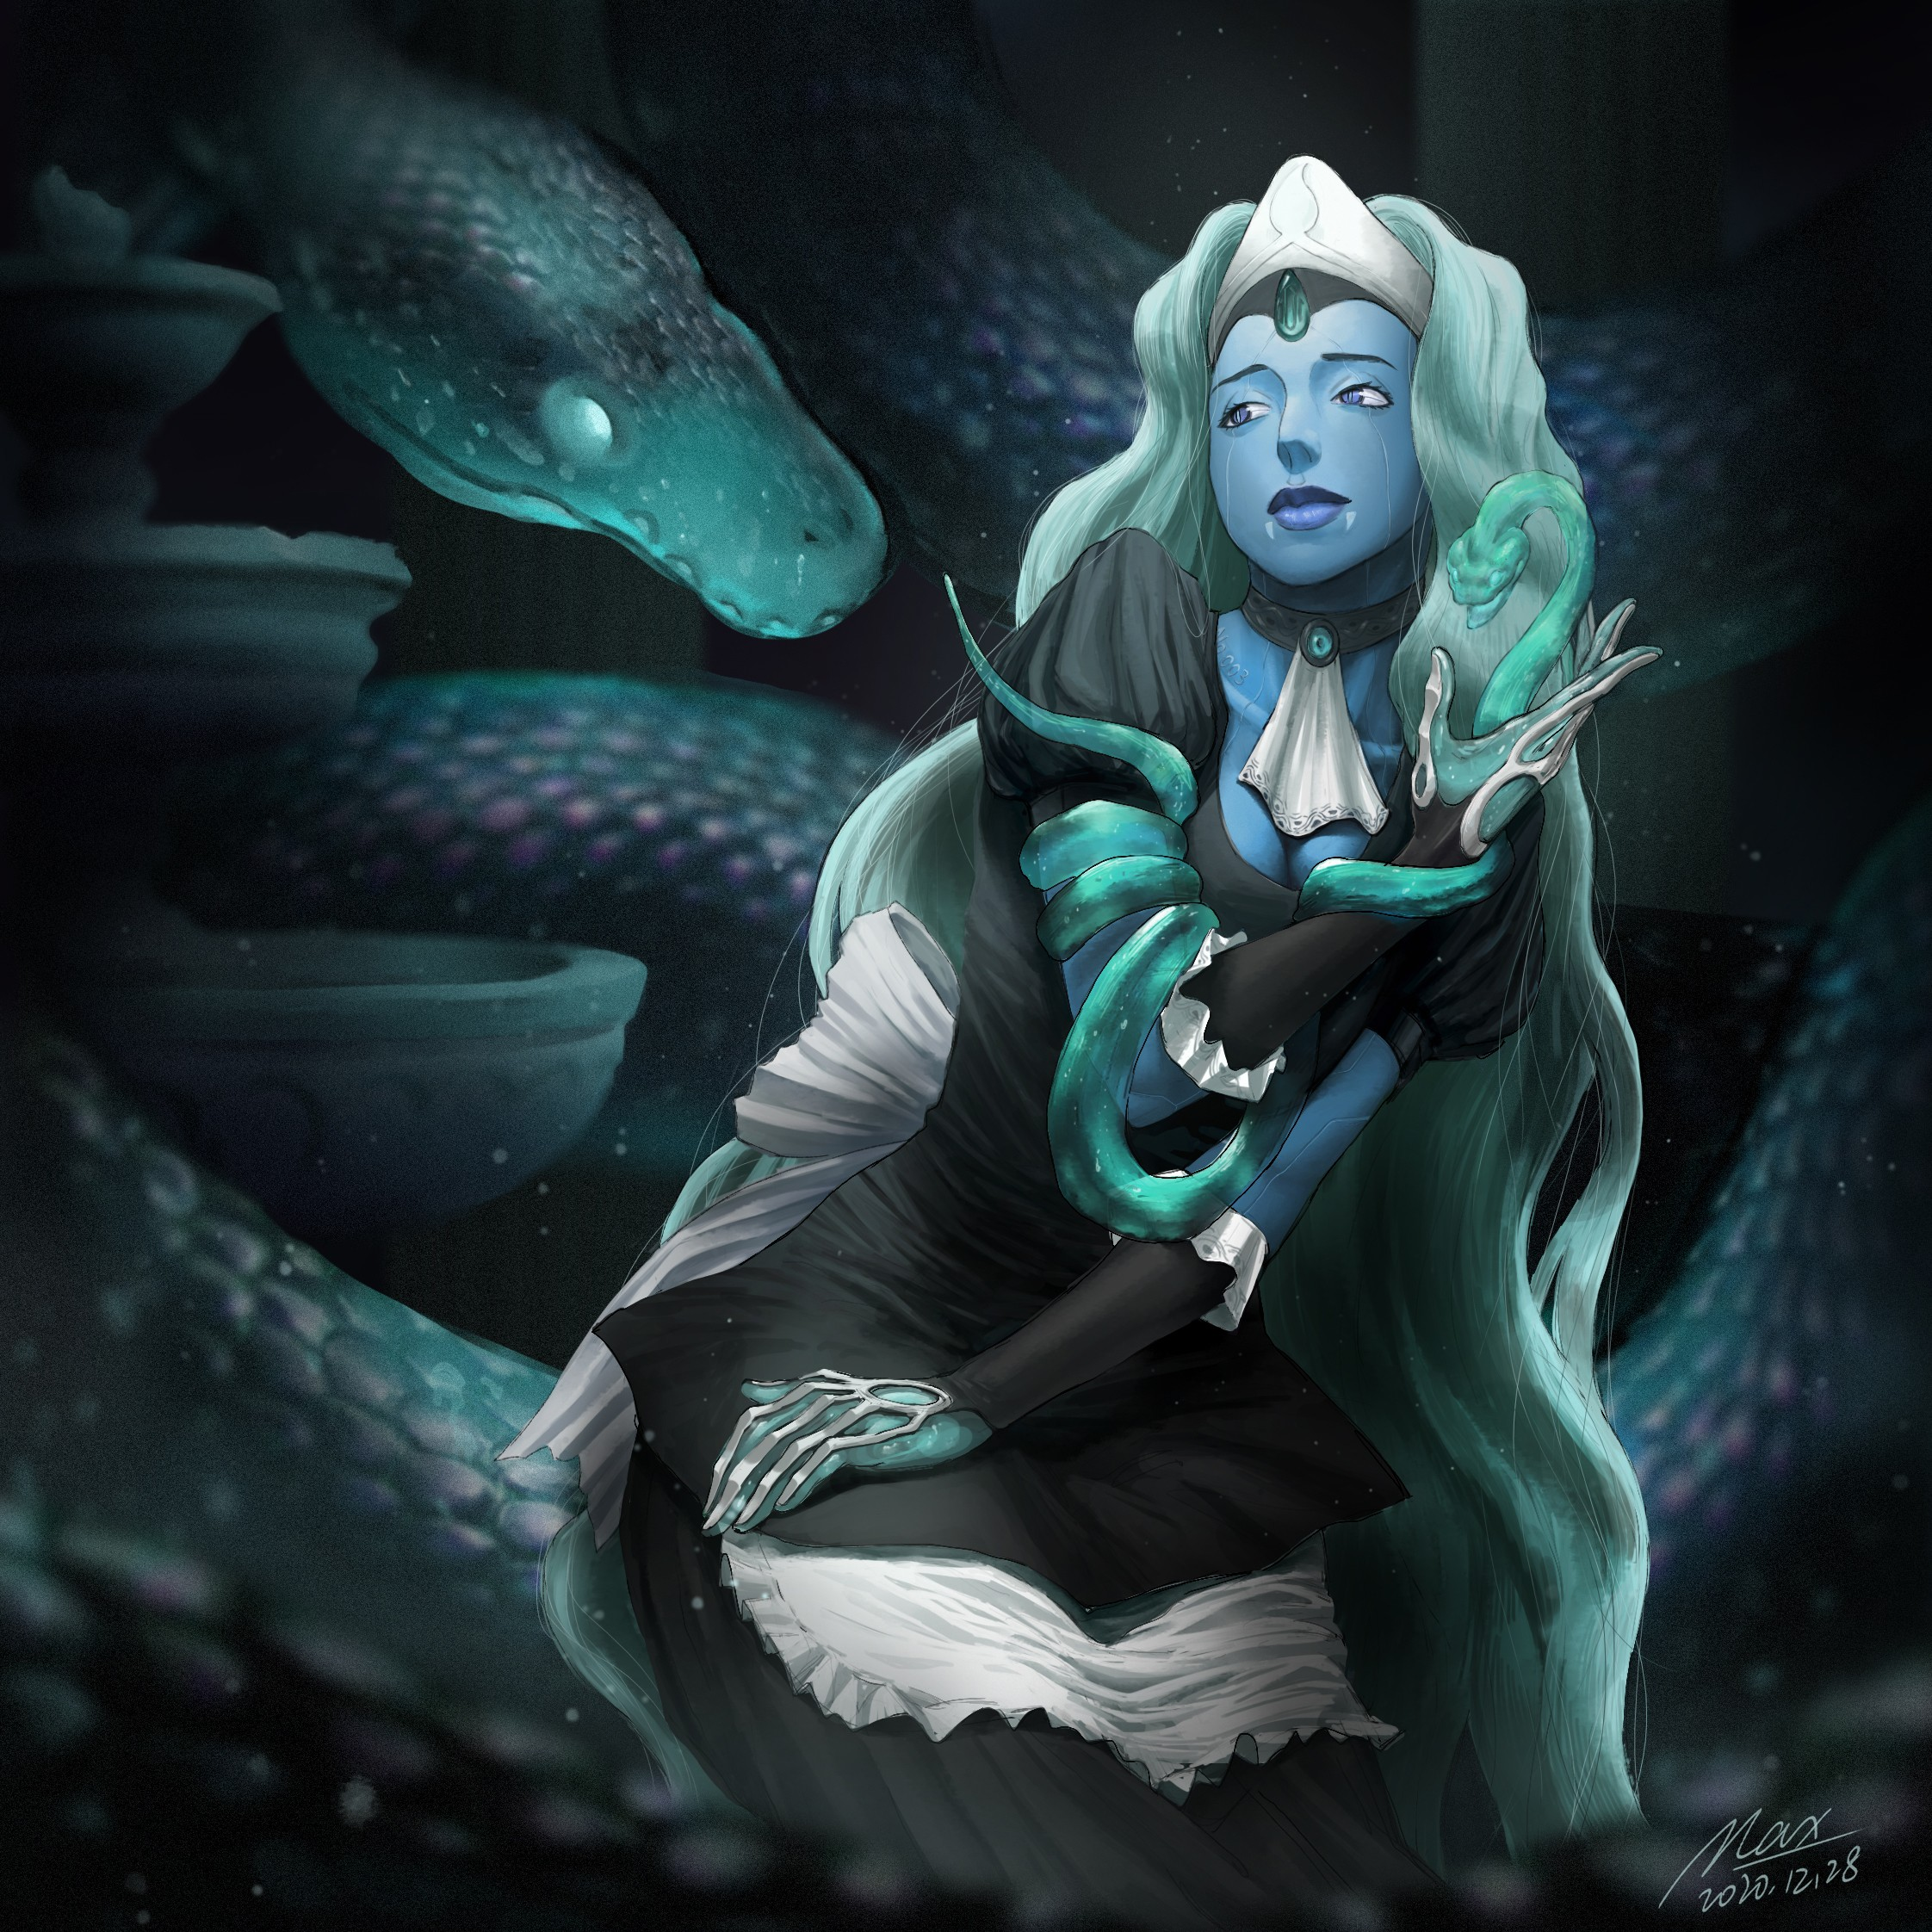 A battle maid with power of controlling water and shaping water into different snakes.